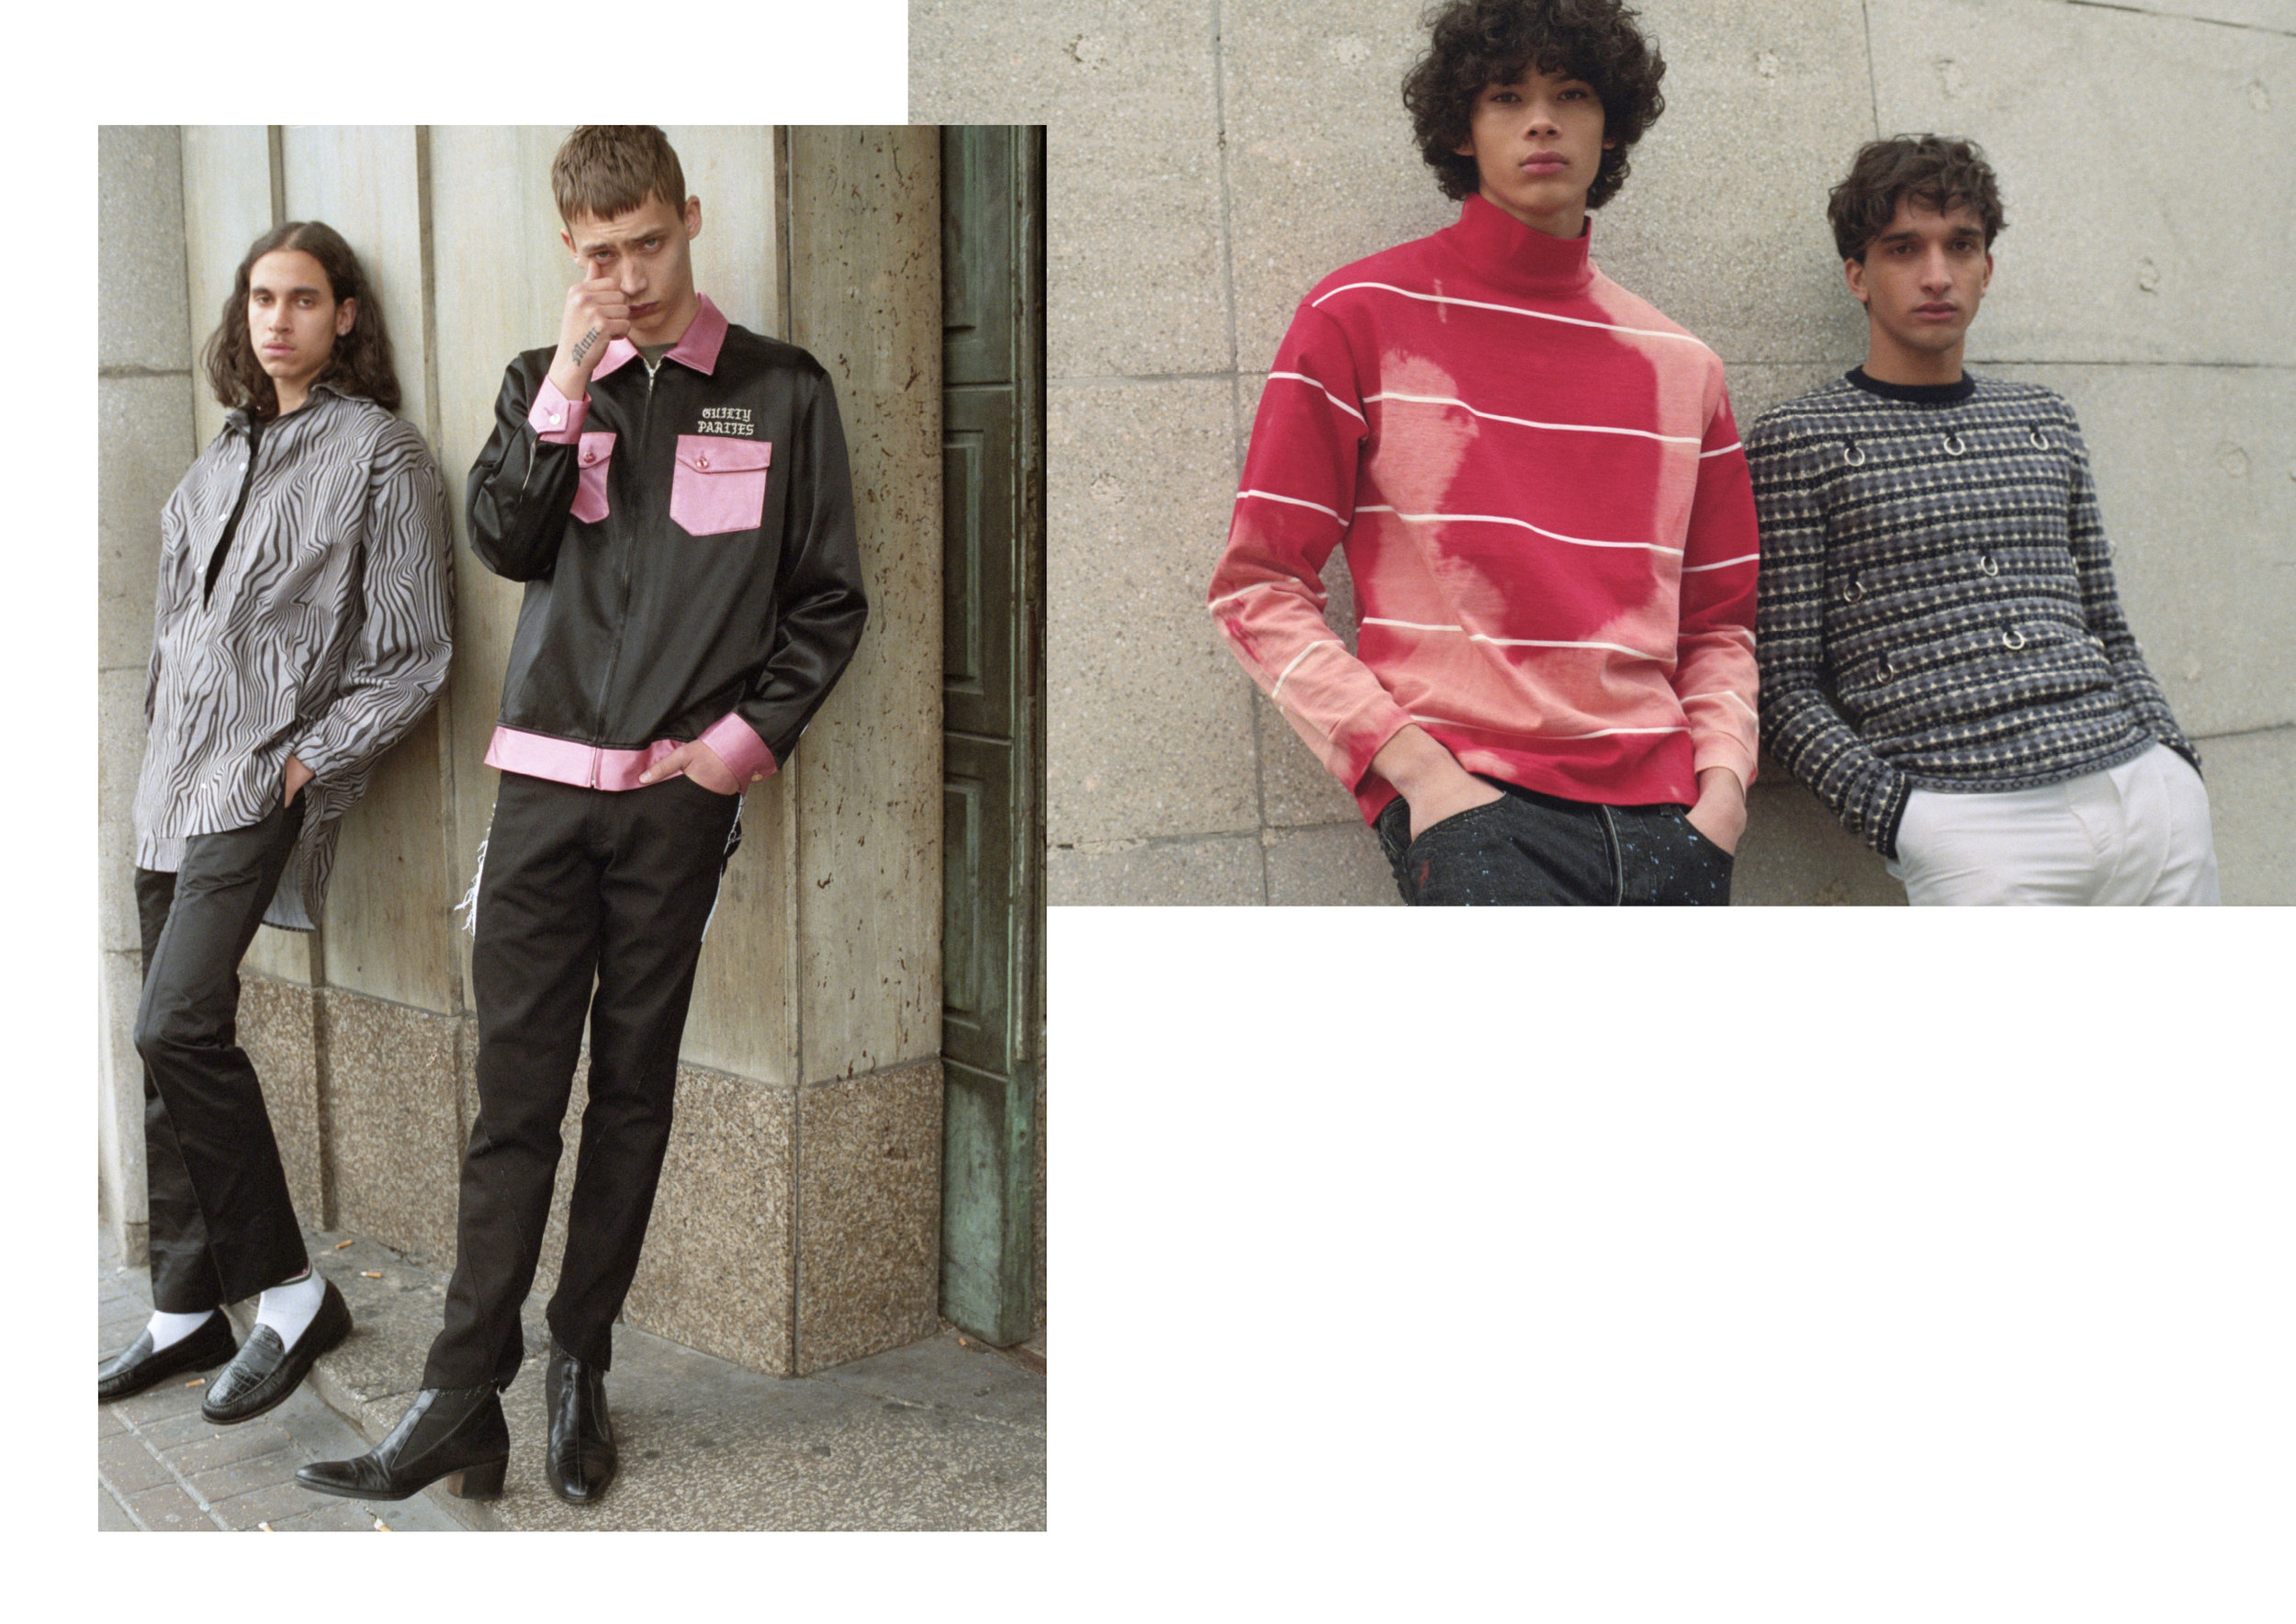 Left: Jamie: Jacket - Wacko Maria, T shirt - Norse Projects, Jeans - Per Gotesson, Boots - Vintage Dior Homme / stylists own Emmanuel: Shirt - Alex Mullins, Black T-shirt - Tourne De Transmission, Trousers stylists own Vintage Martyn Bal, Shoes - G H Bass.  Right: Noah: Jumper - Raf Simmos @ Browns, Trousers - Xander Zhou. Akeem: Turtleneck - Balenciaga @ Browns, Jeans - Reese copper.